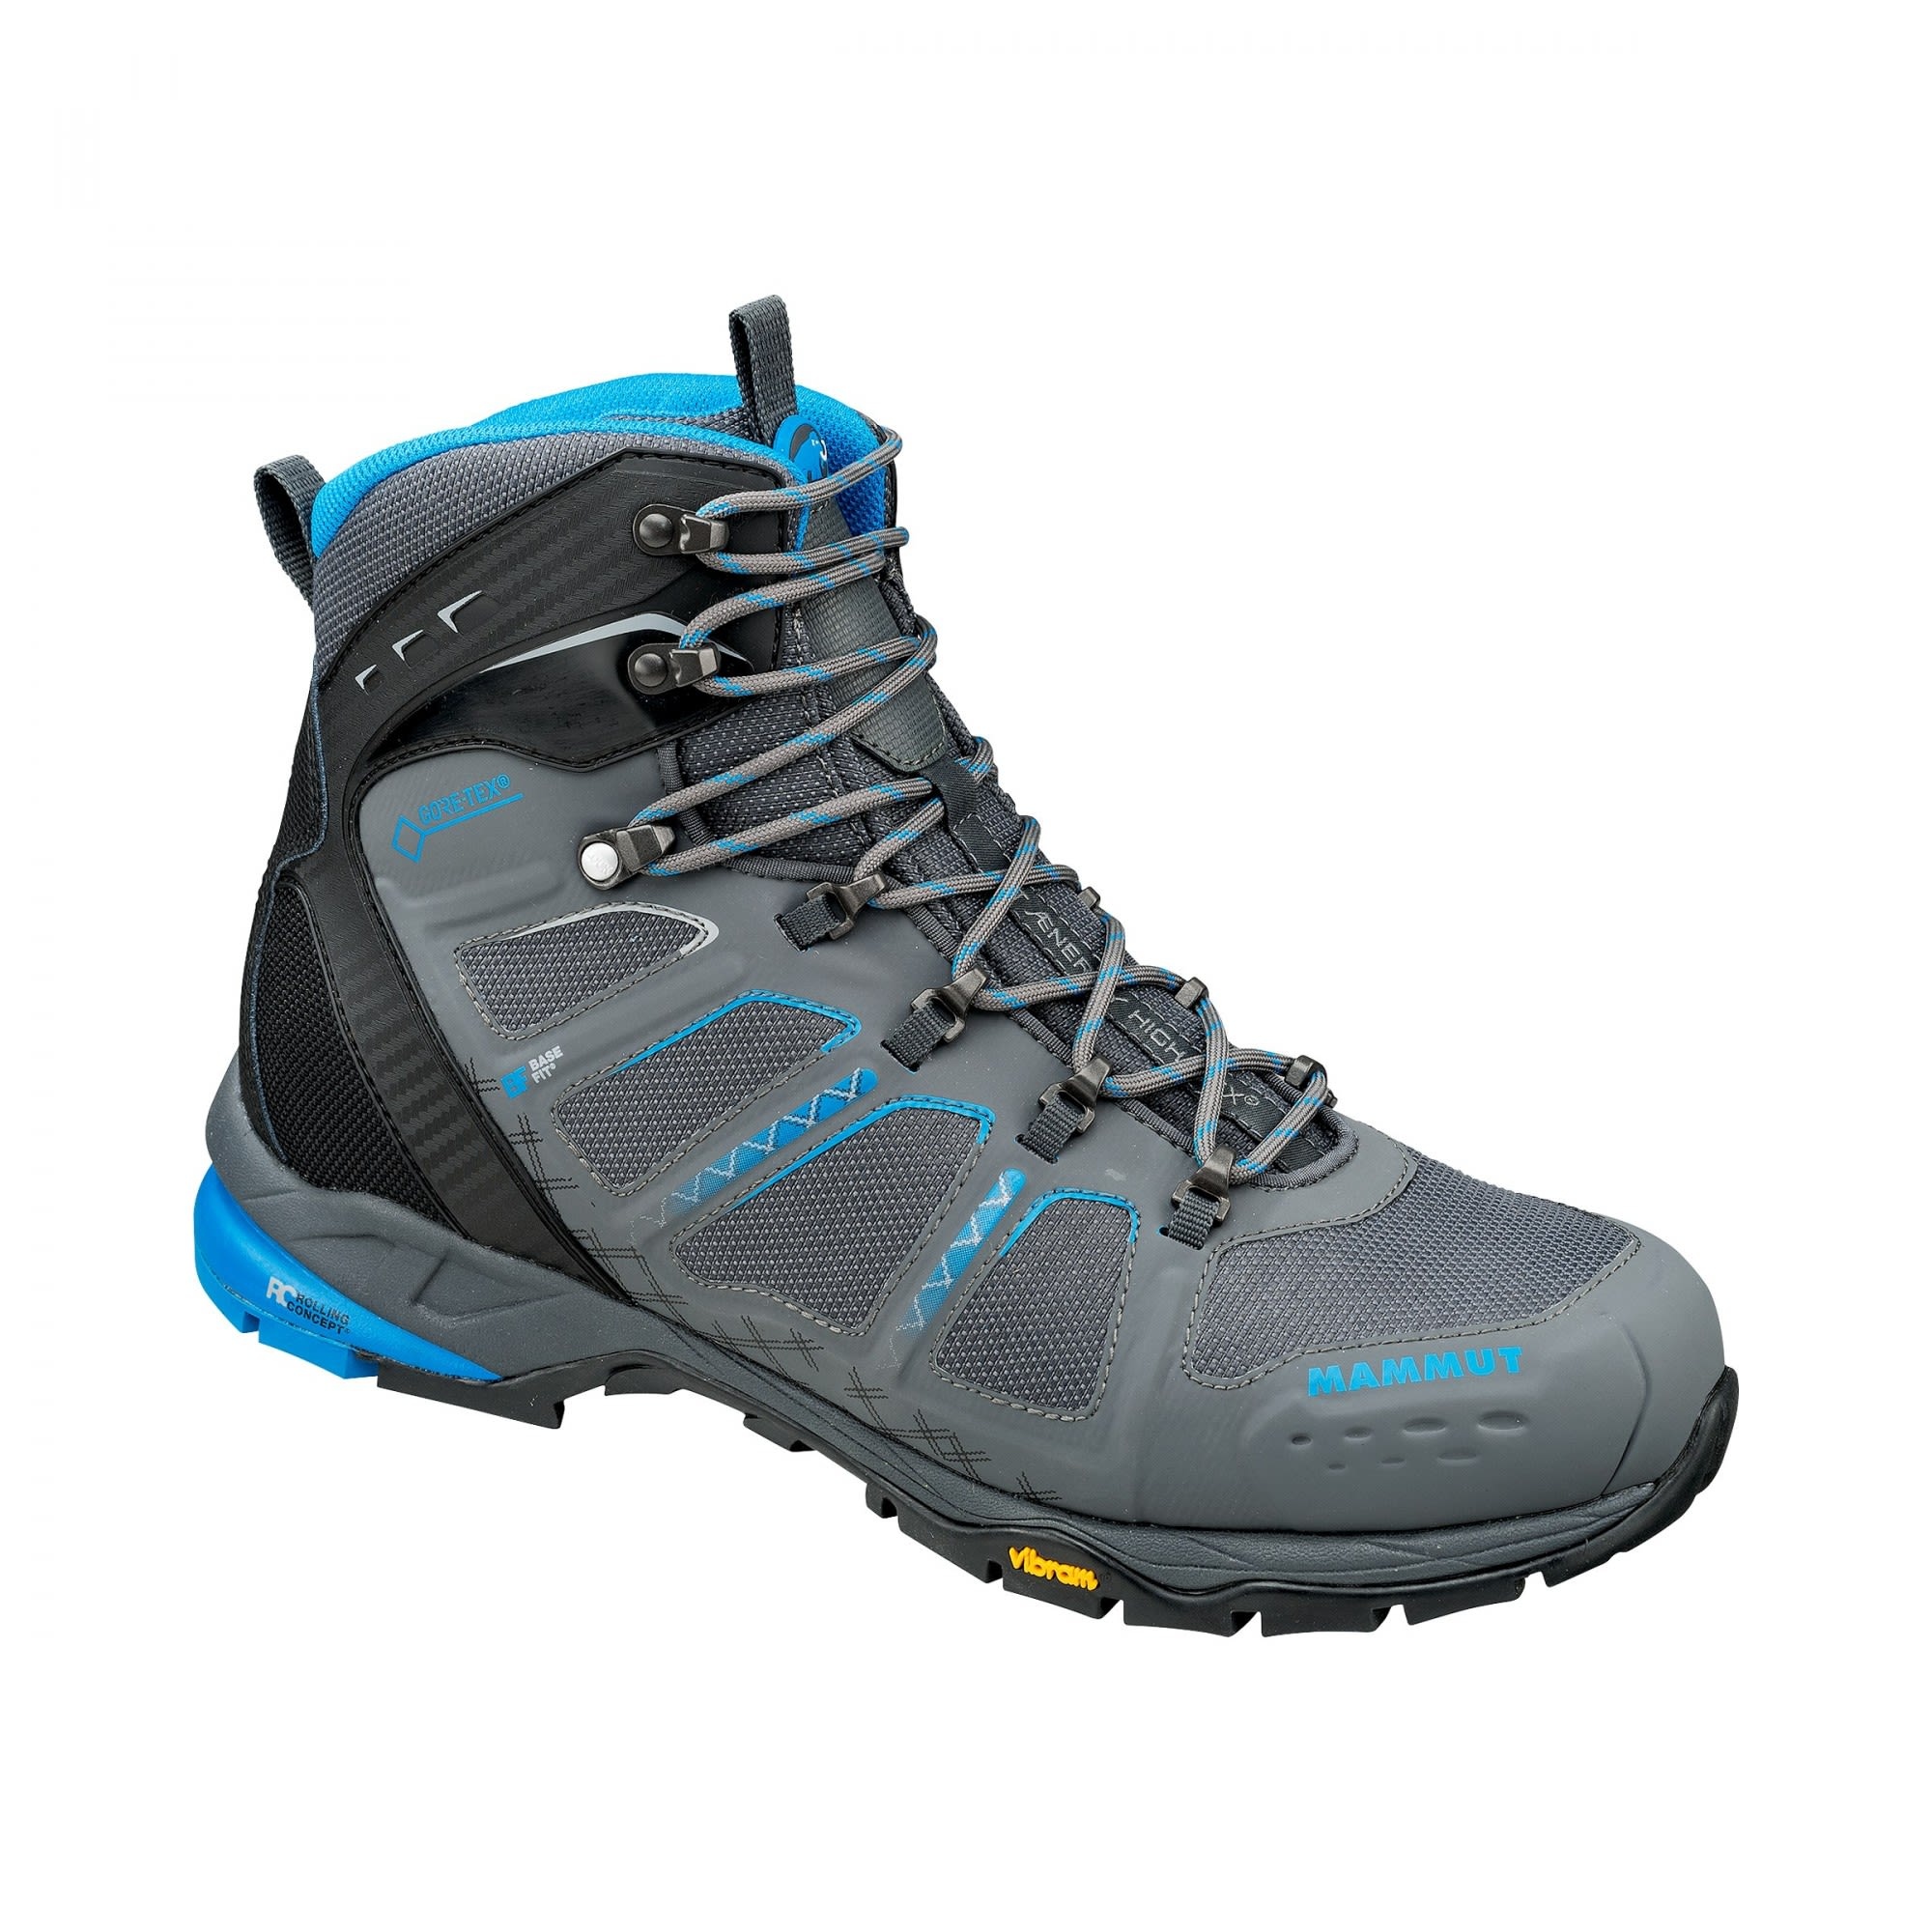 Mammut M T Aenergy High Gtx® | Größe UK 6.5 / EU 40 / US 7.5,UK 7.0 / EU 40 2